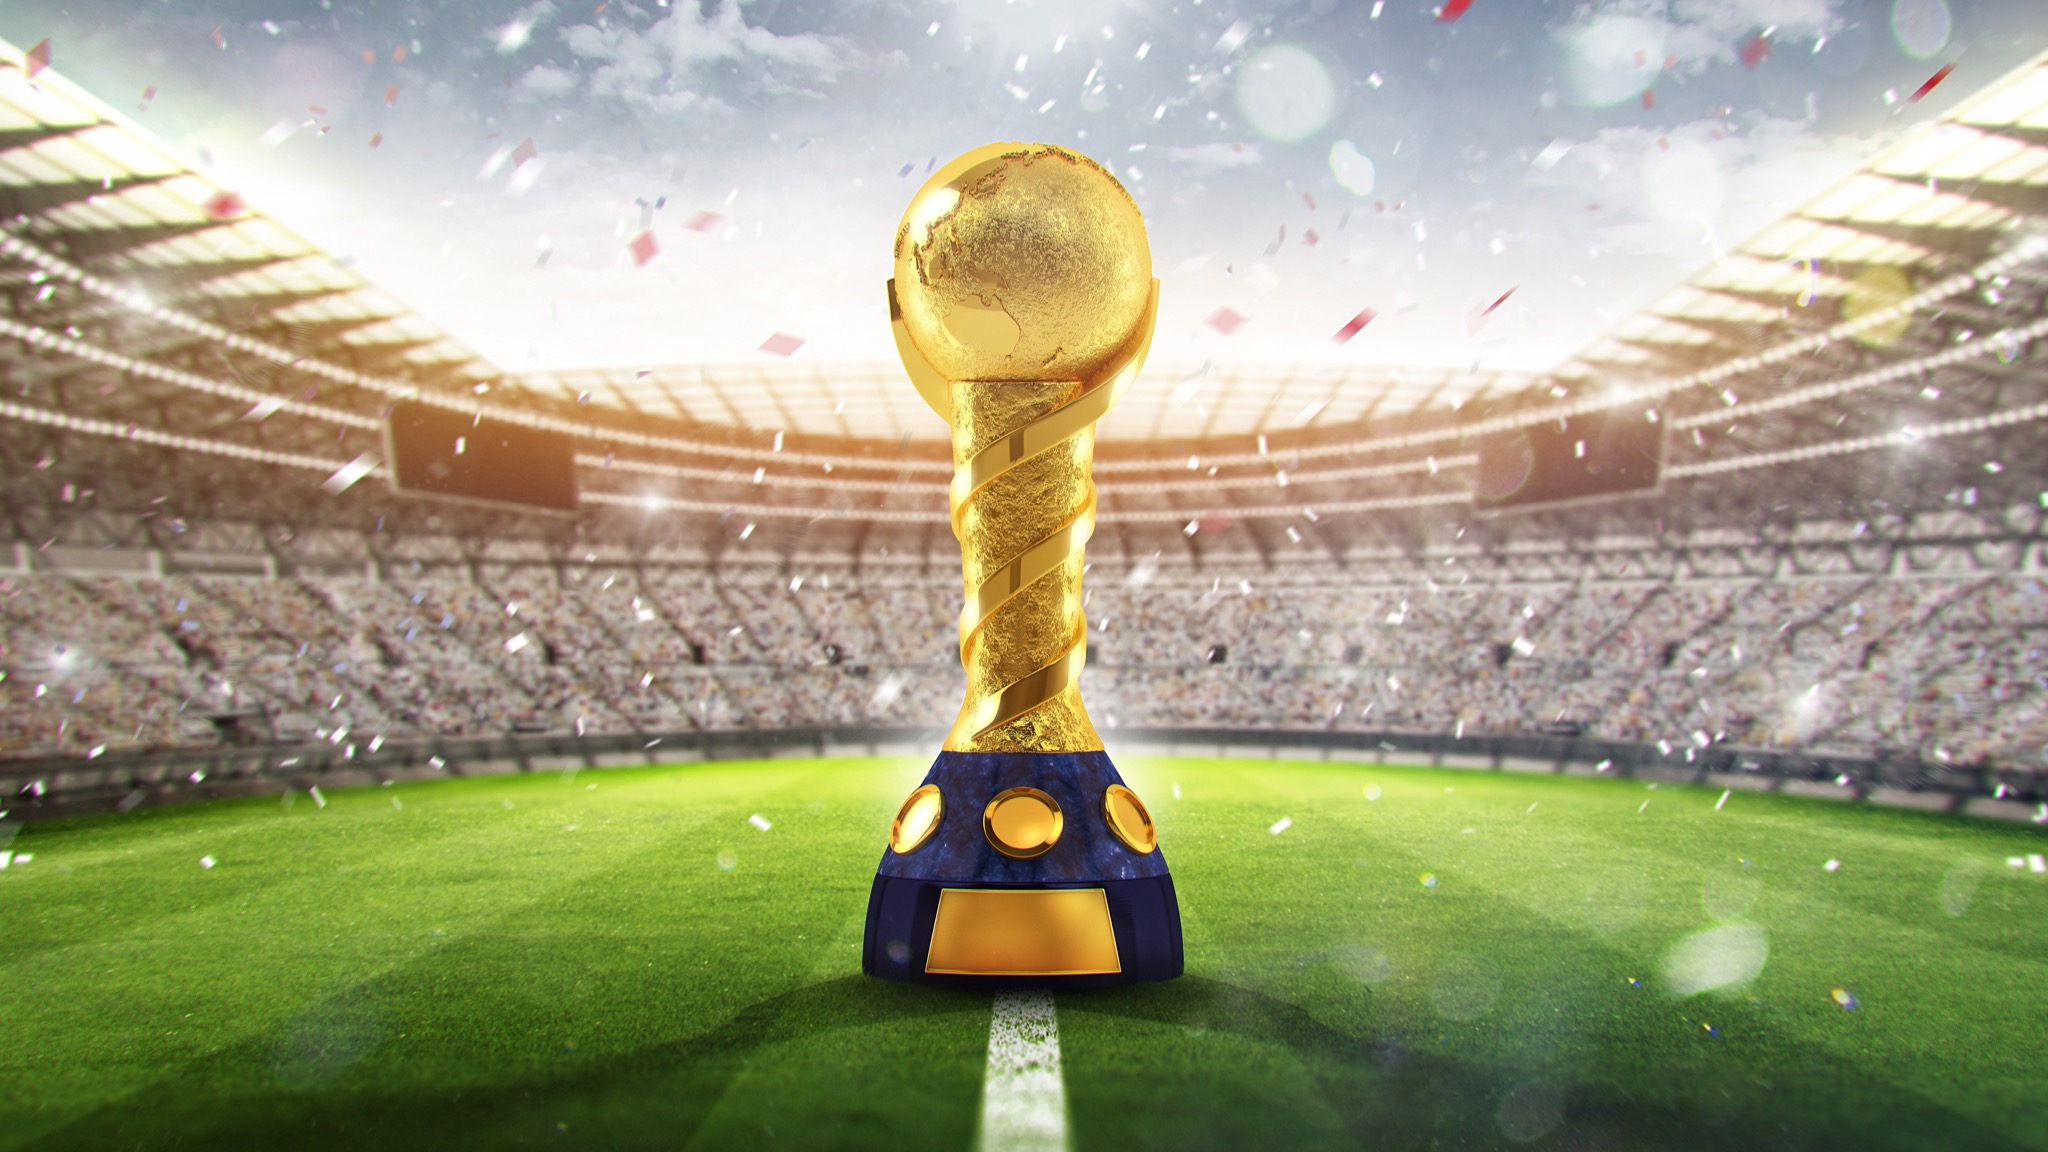 World Cup 2018 Draw Live Stream: How To Watch World Cup Draw Online